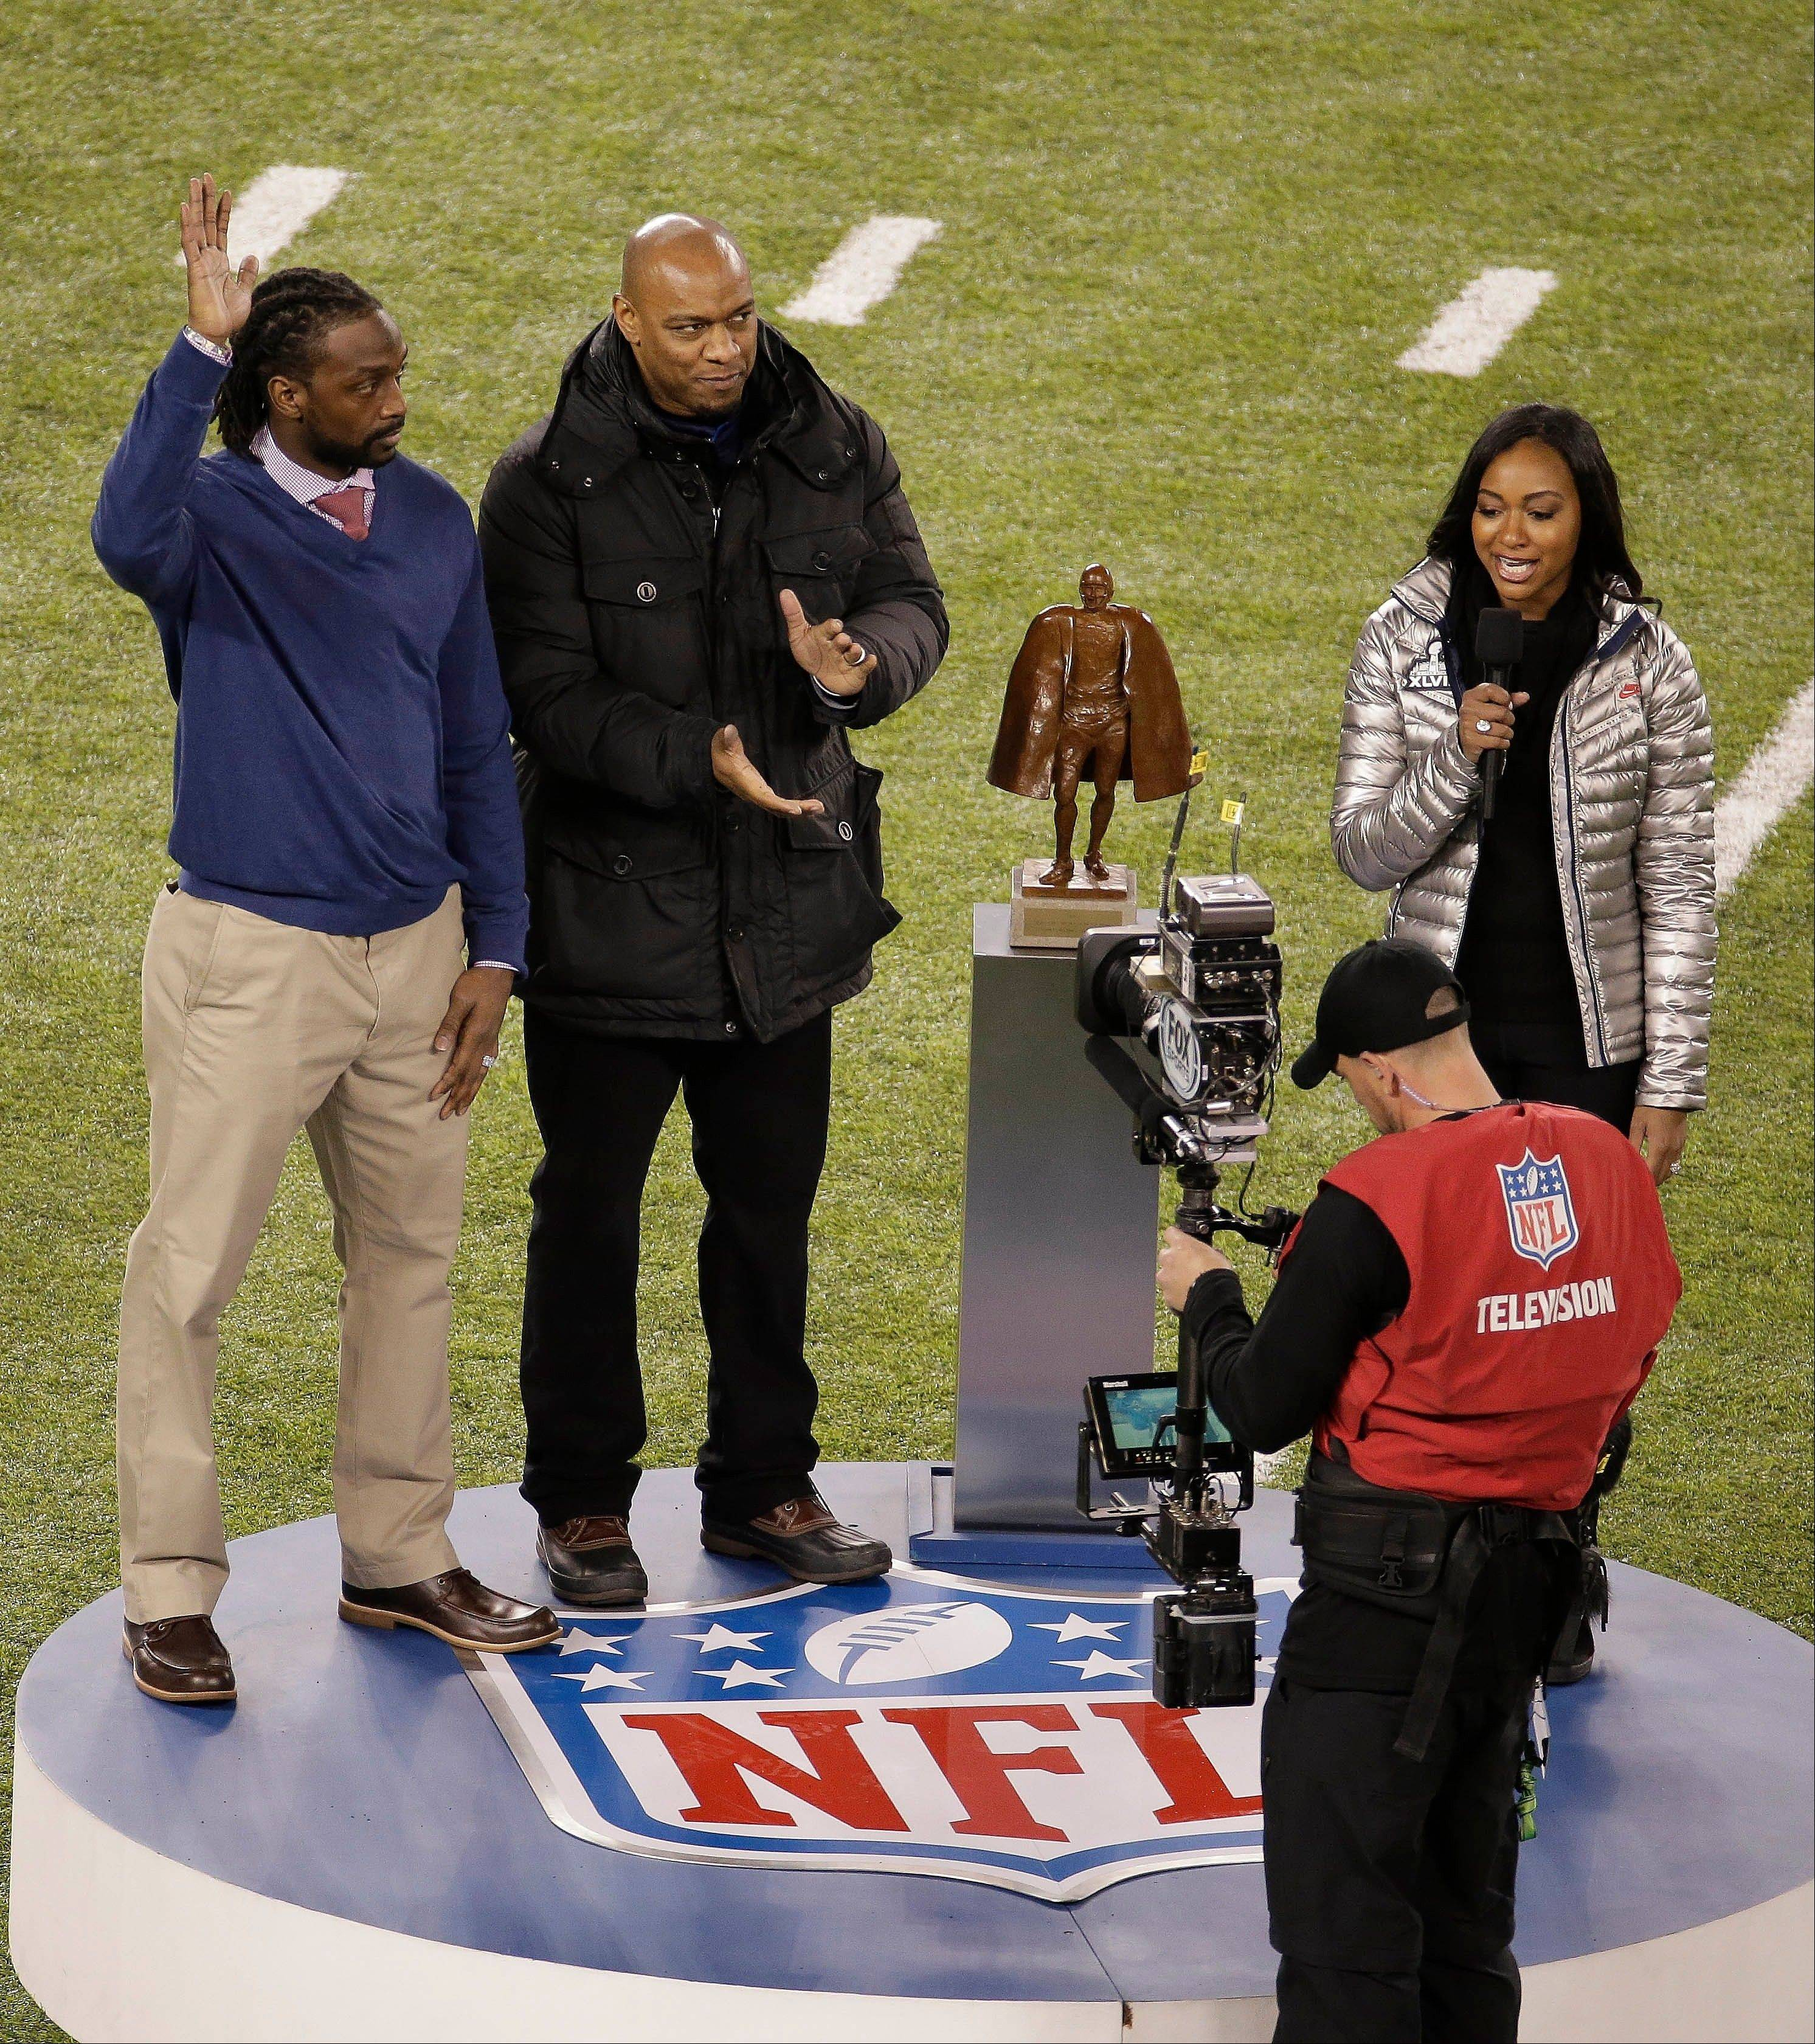 Charles Tillman, of the Chicago Bears, left, reacts as he accepts the Walter Payton NFL Man of the Year award before the NFL Super Bowl XLVIII football game.